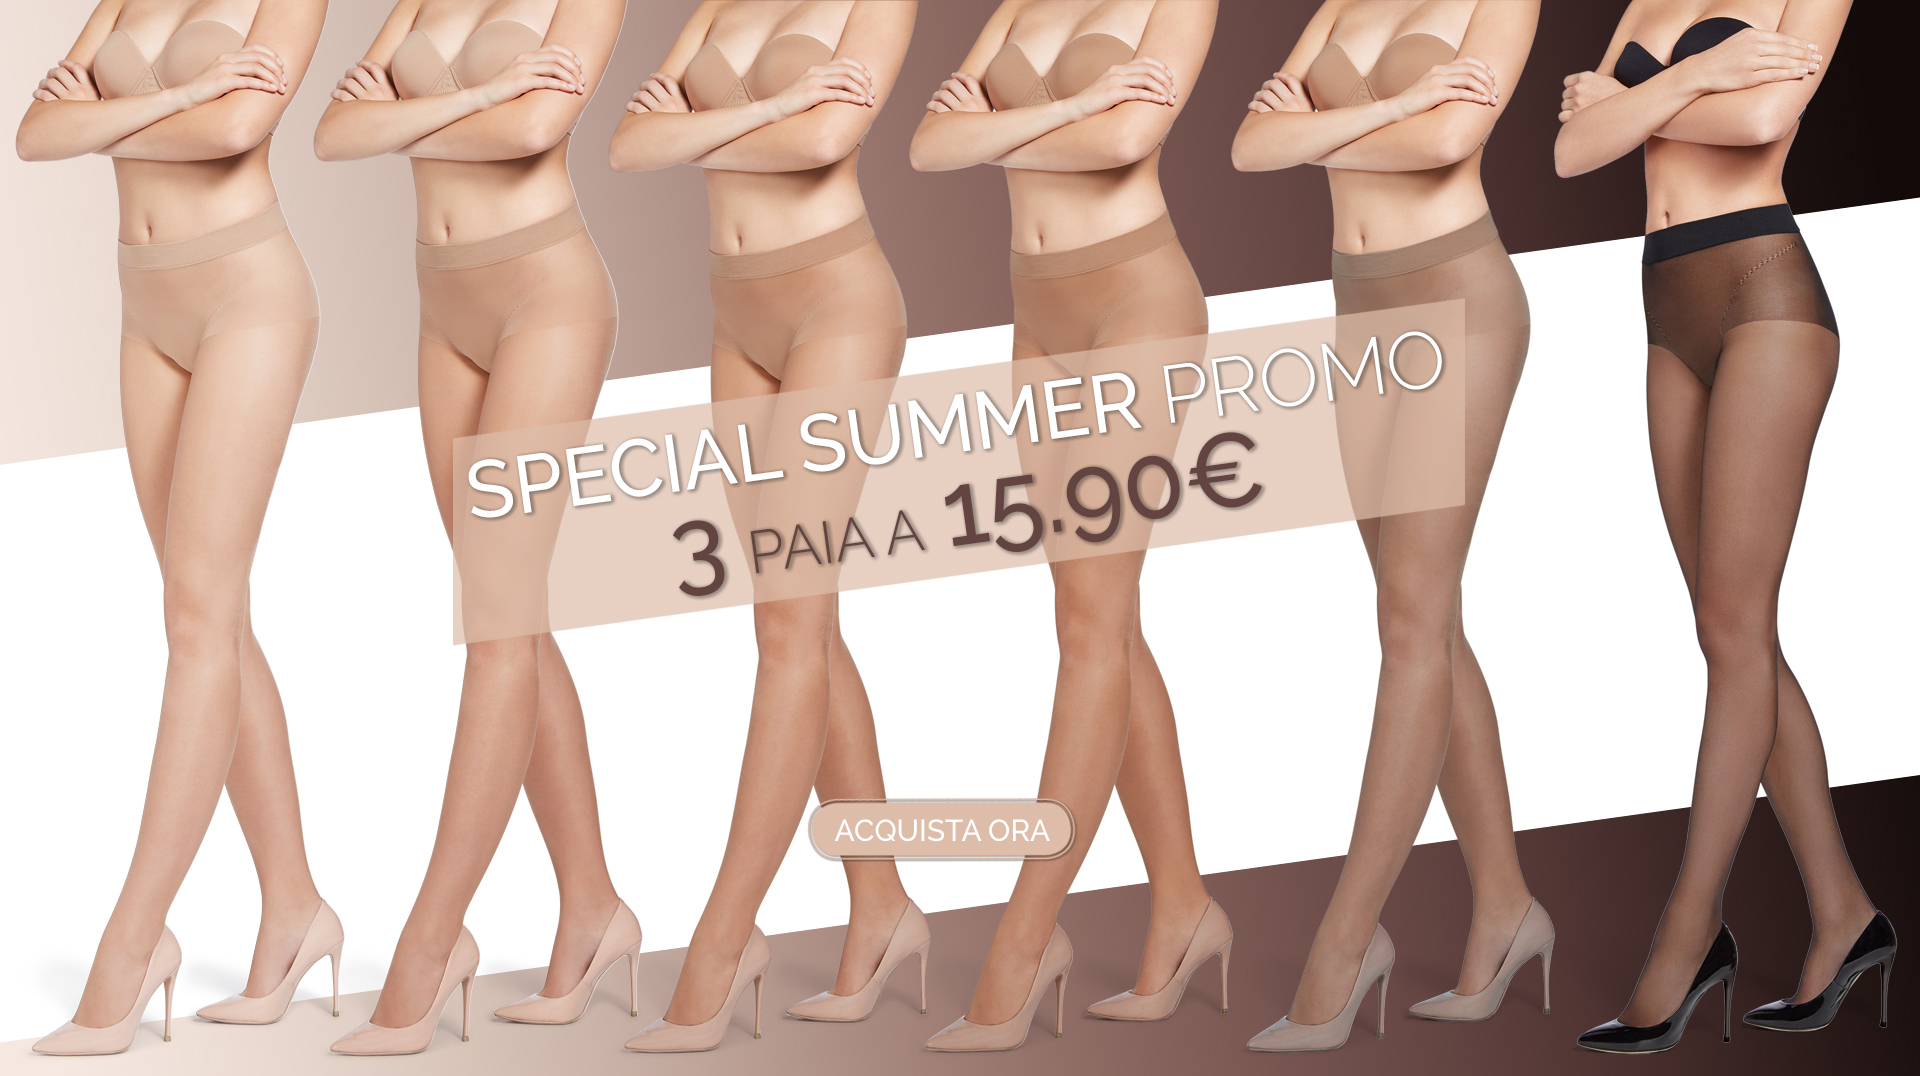 SPECIAL SUMMER PROMO 3paia a 15.90€